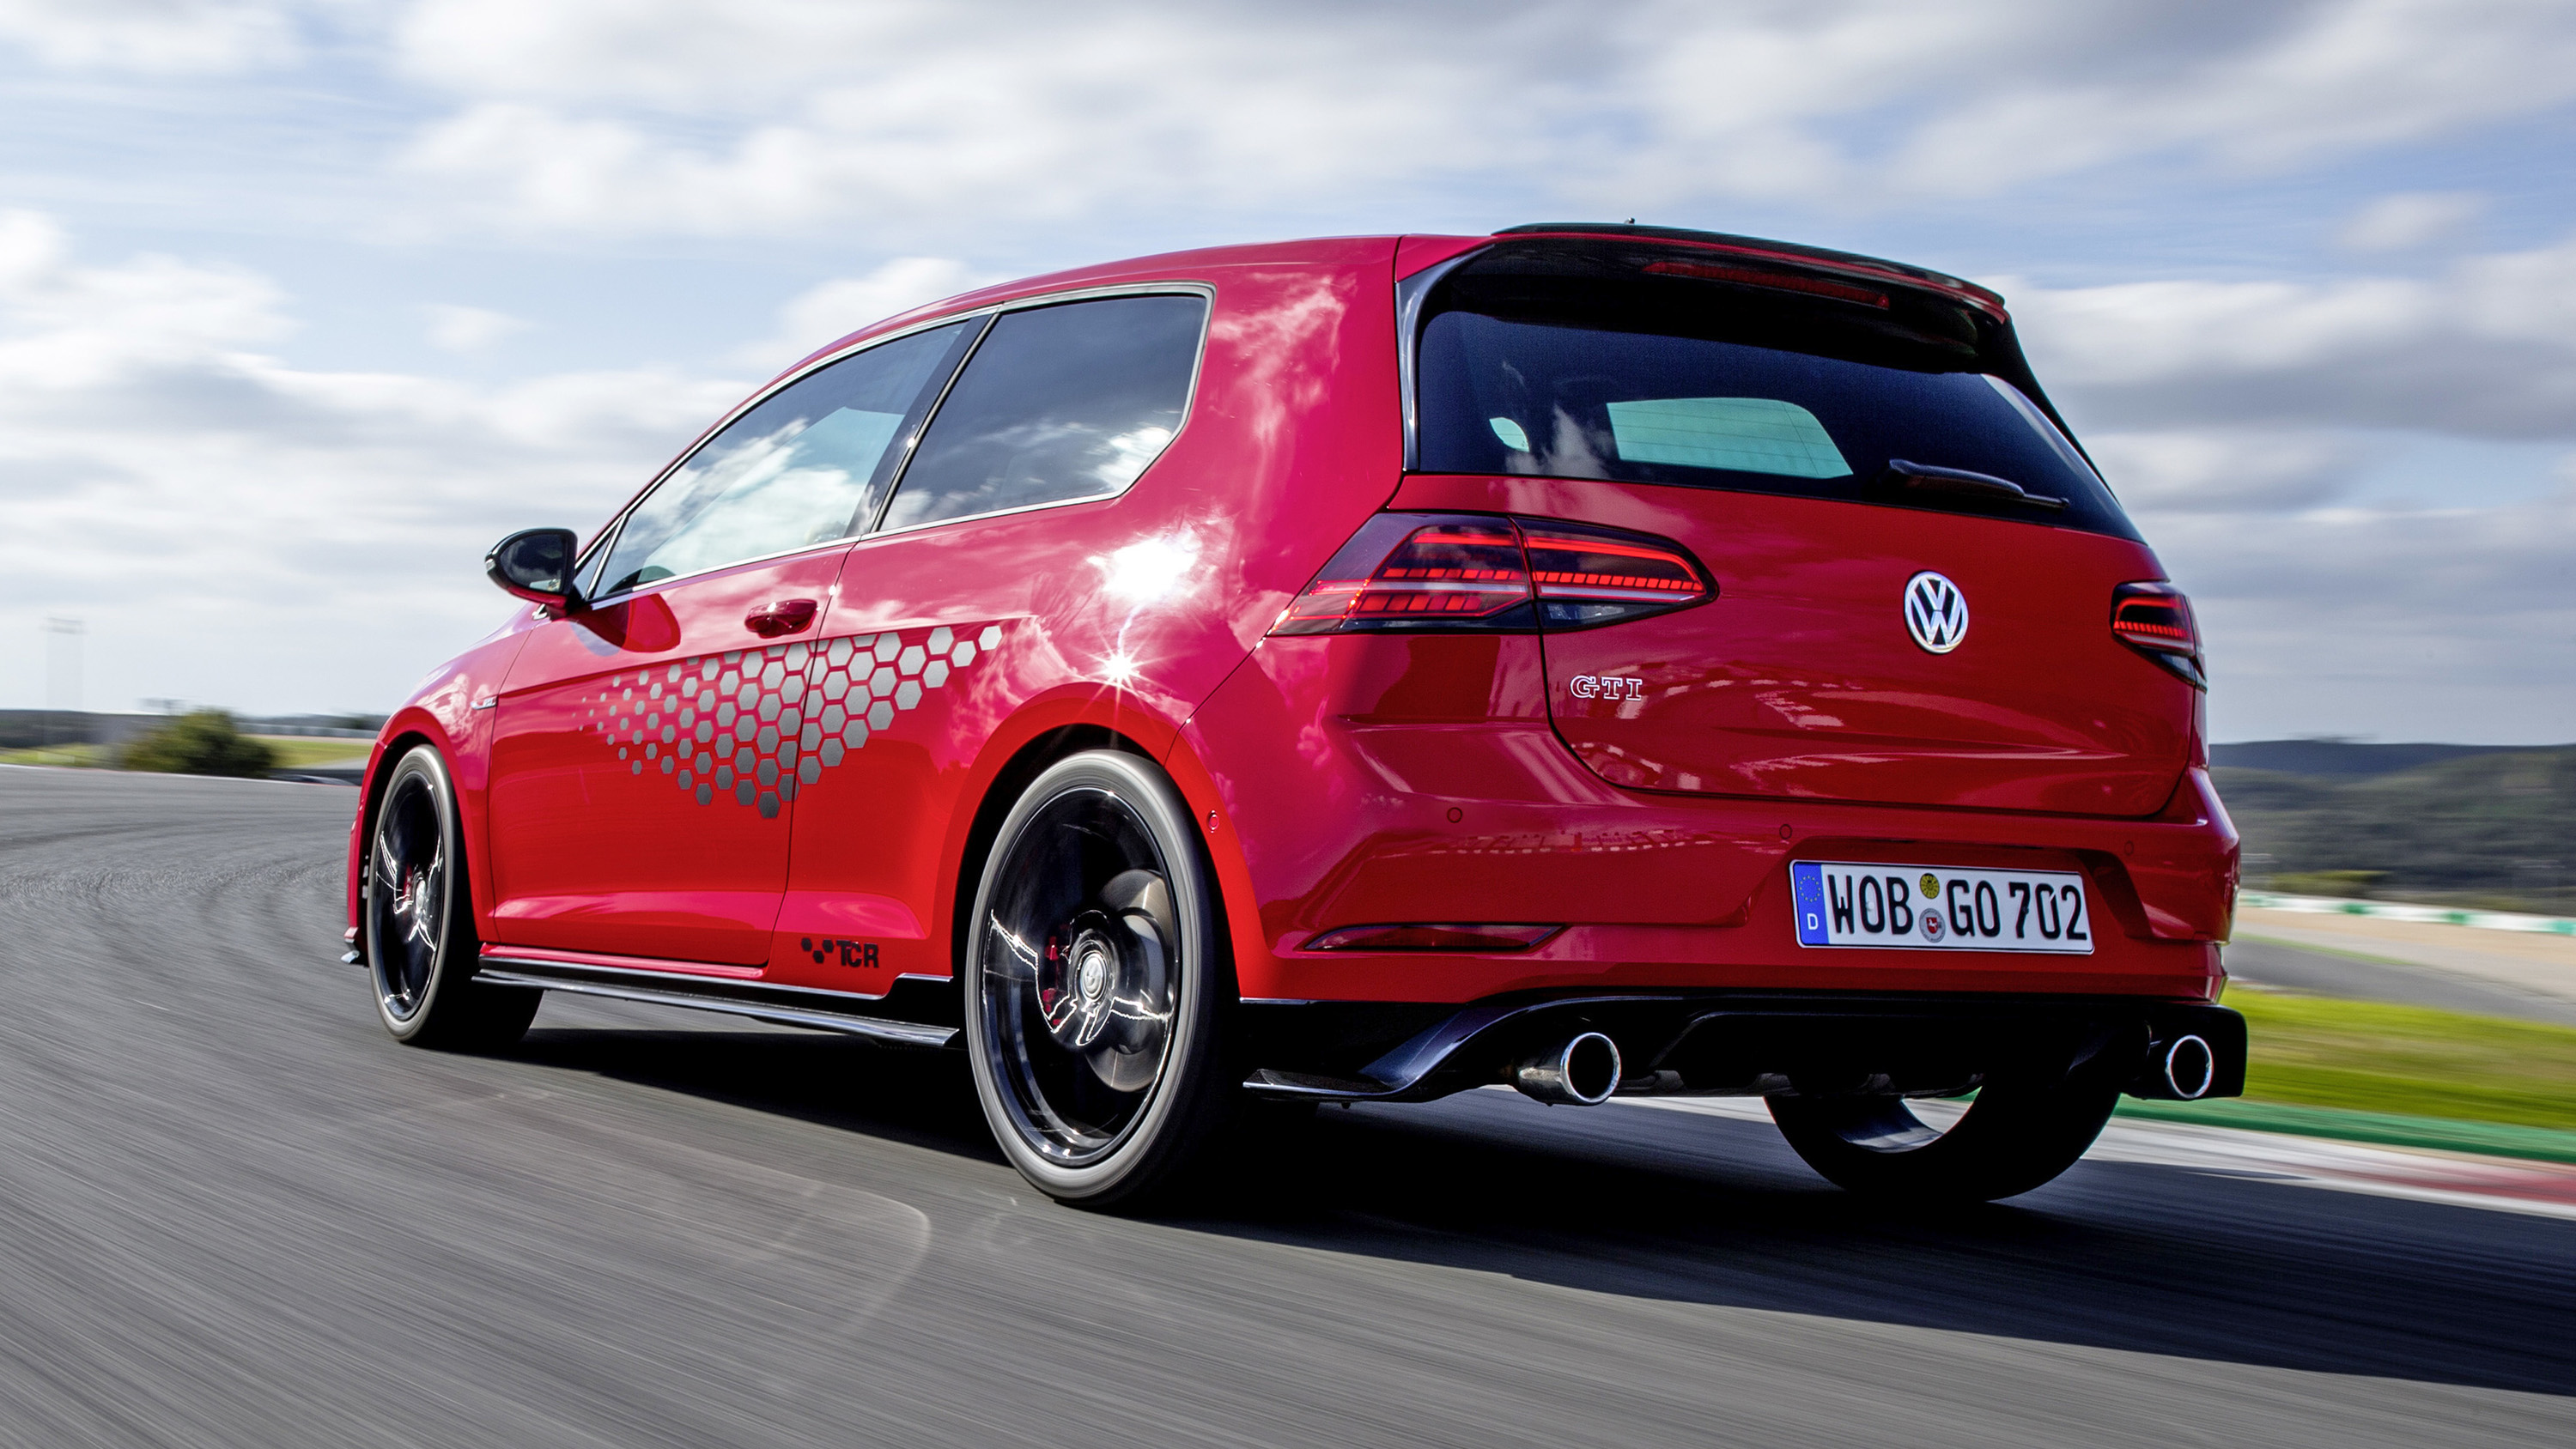 Vw Golf Gti Tcr Review Harder Edged Hot Hatch Driven